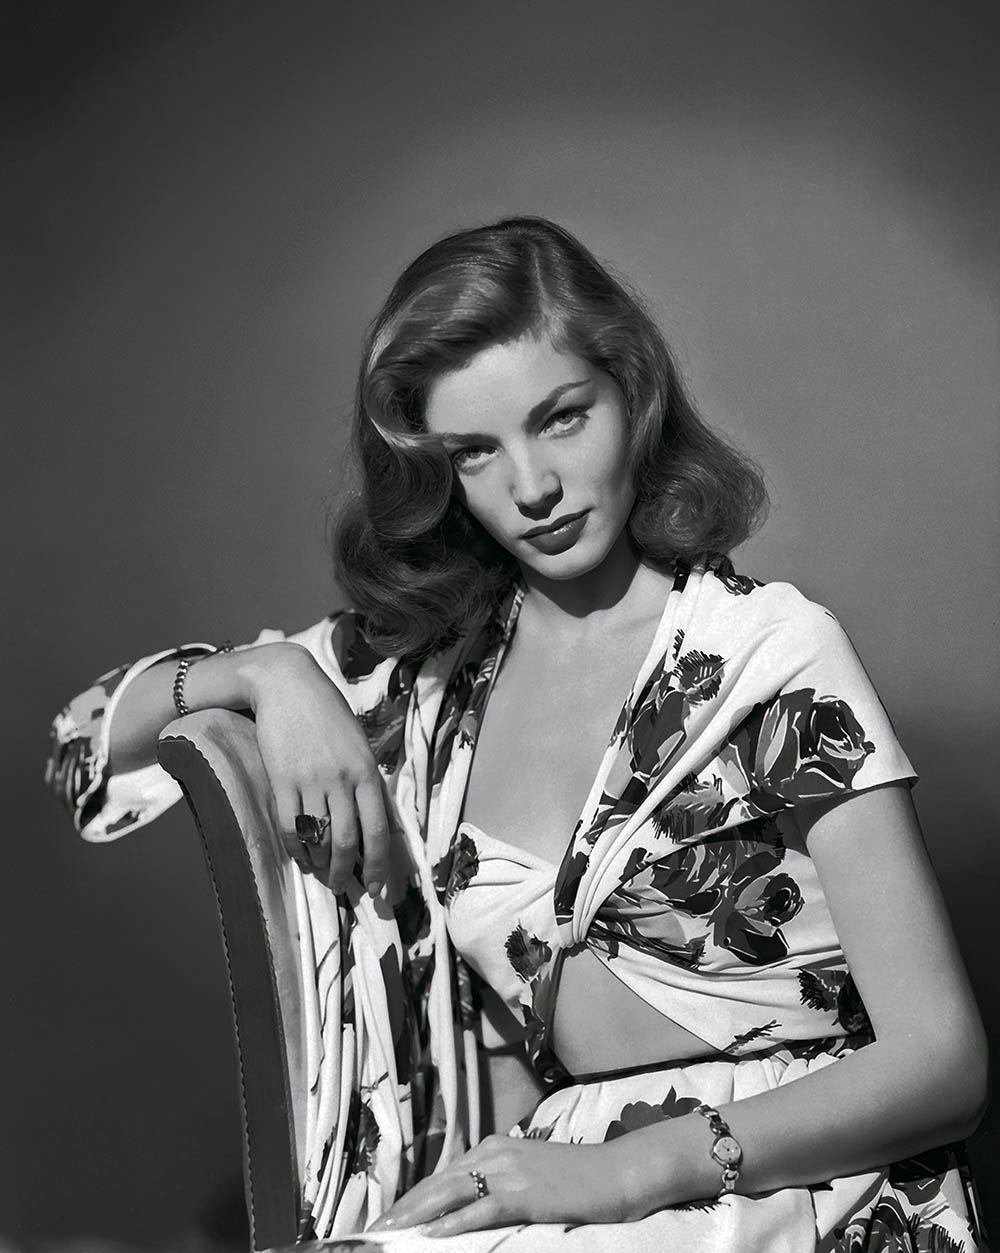 circa 1945: American screen star Lauren Bacall wearing a summer suit in a bold floral print Restricted to editorial use related to the film or the individuals involved (producers, directors, authors, actors, etc.)